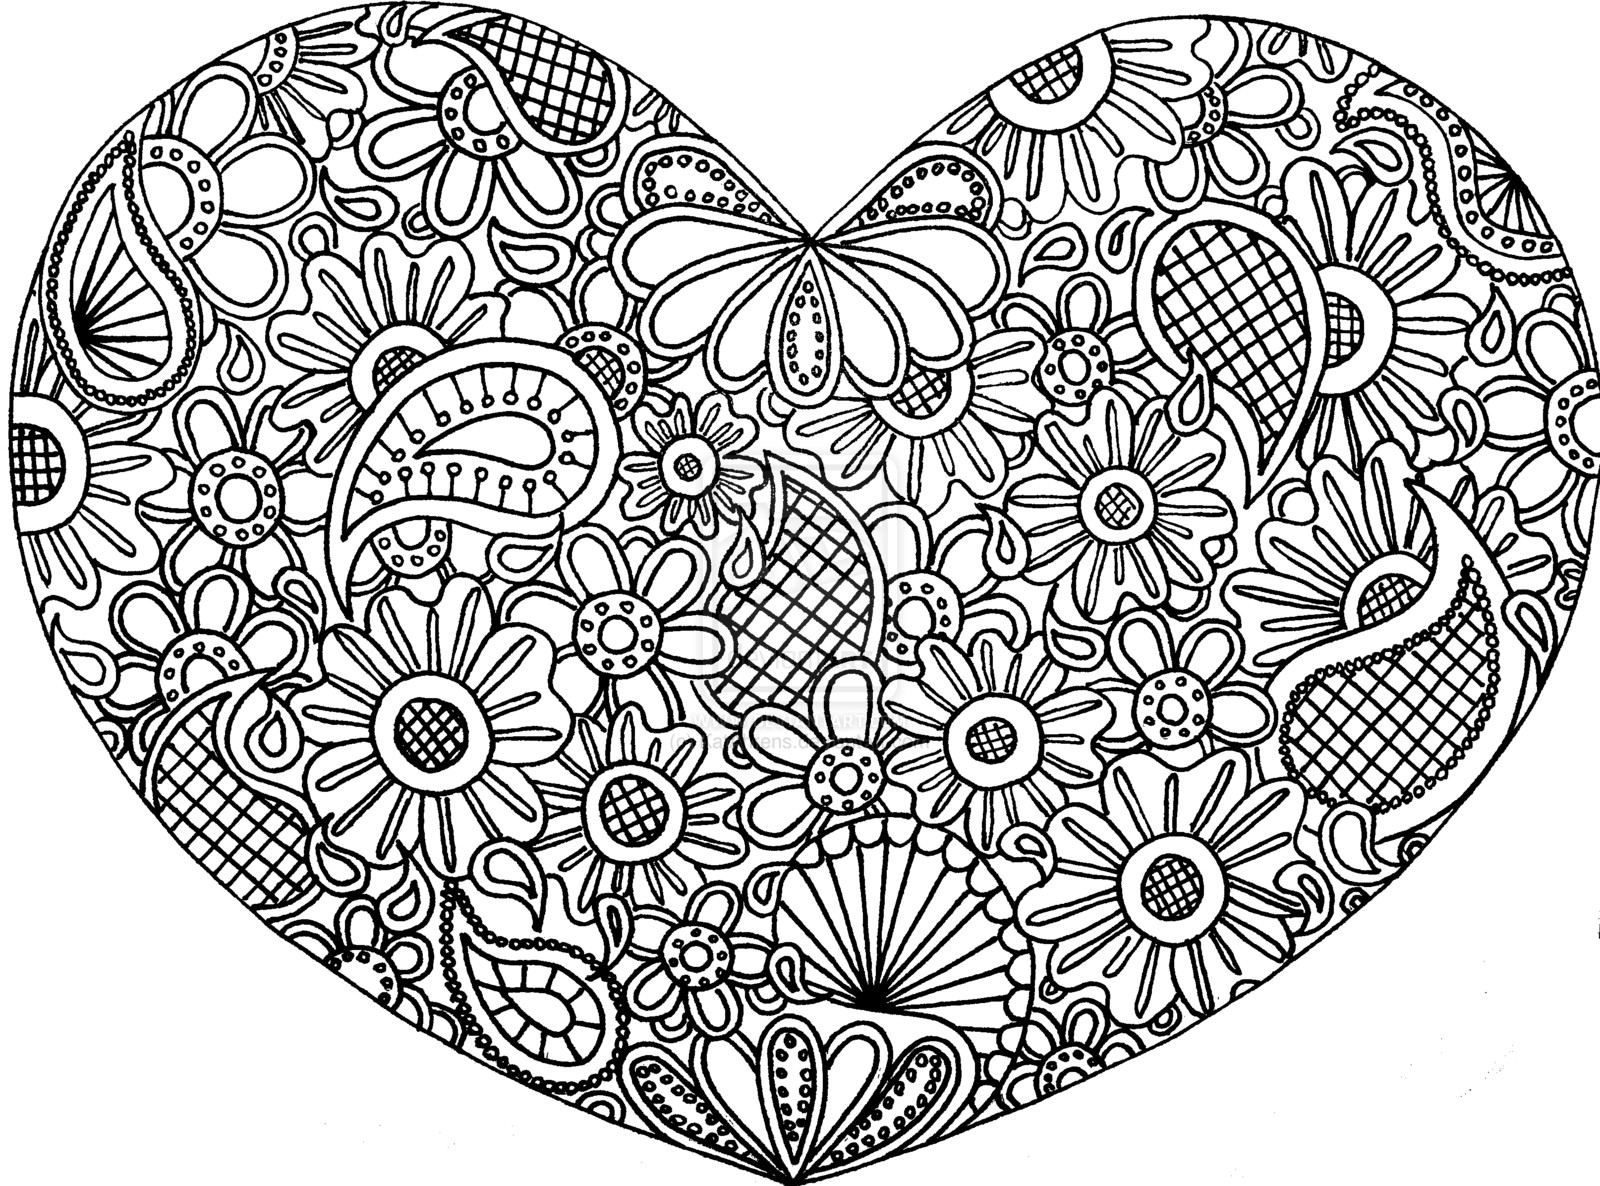 image regarding Printable Zentangle Patterns named Zentangle Designs Coloring Internet pages at  Absolutely free